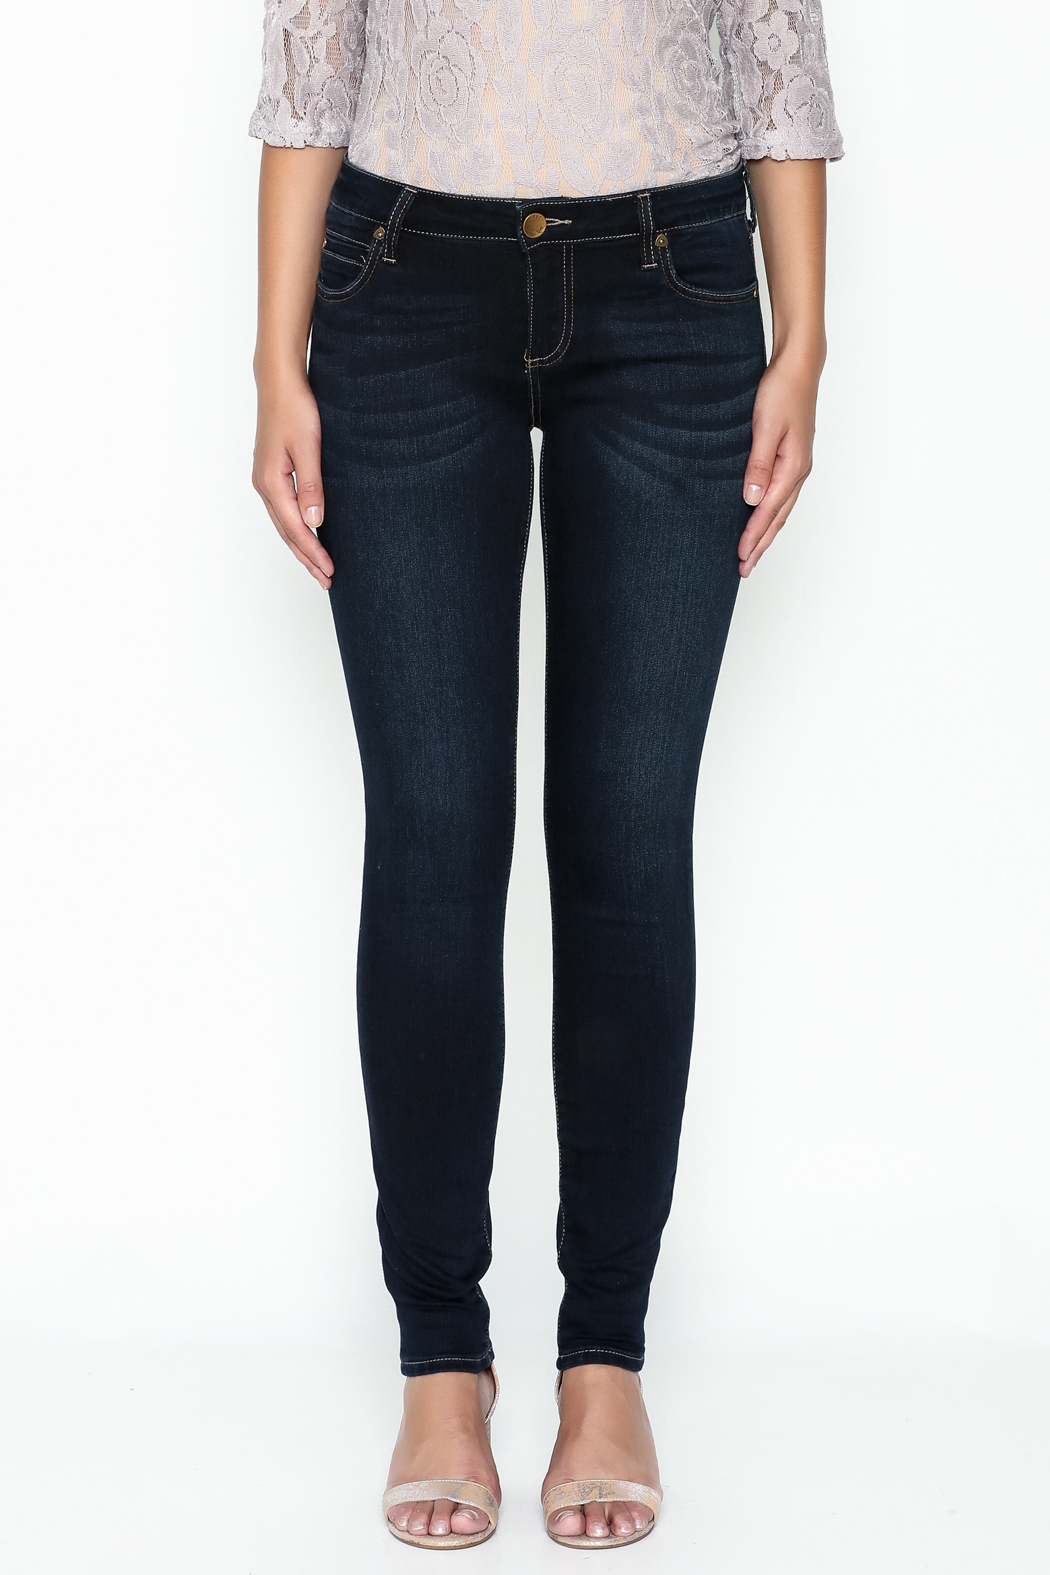 Kut from the Kloth Toothpick Skinny Denim Jeans - Front Full Image